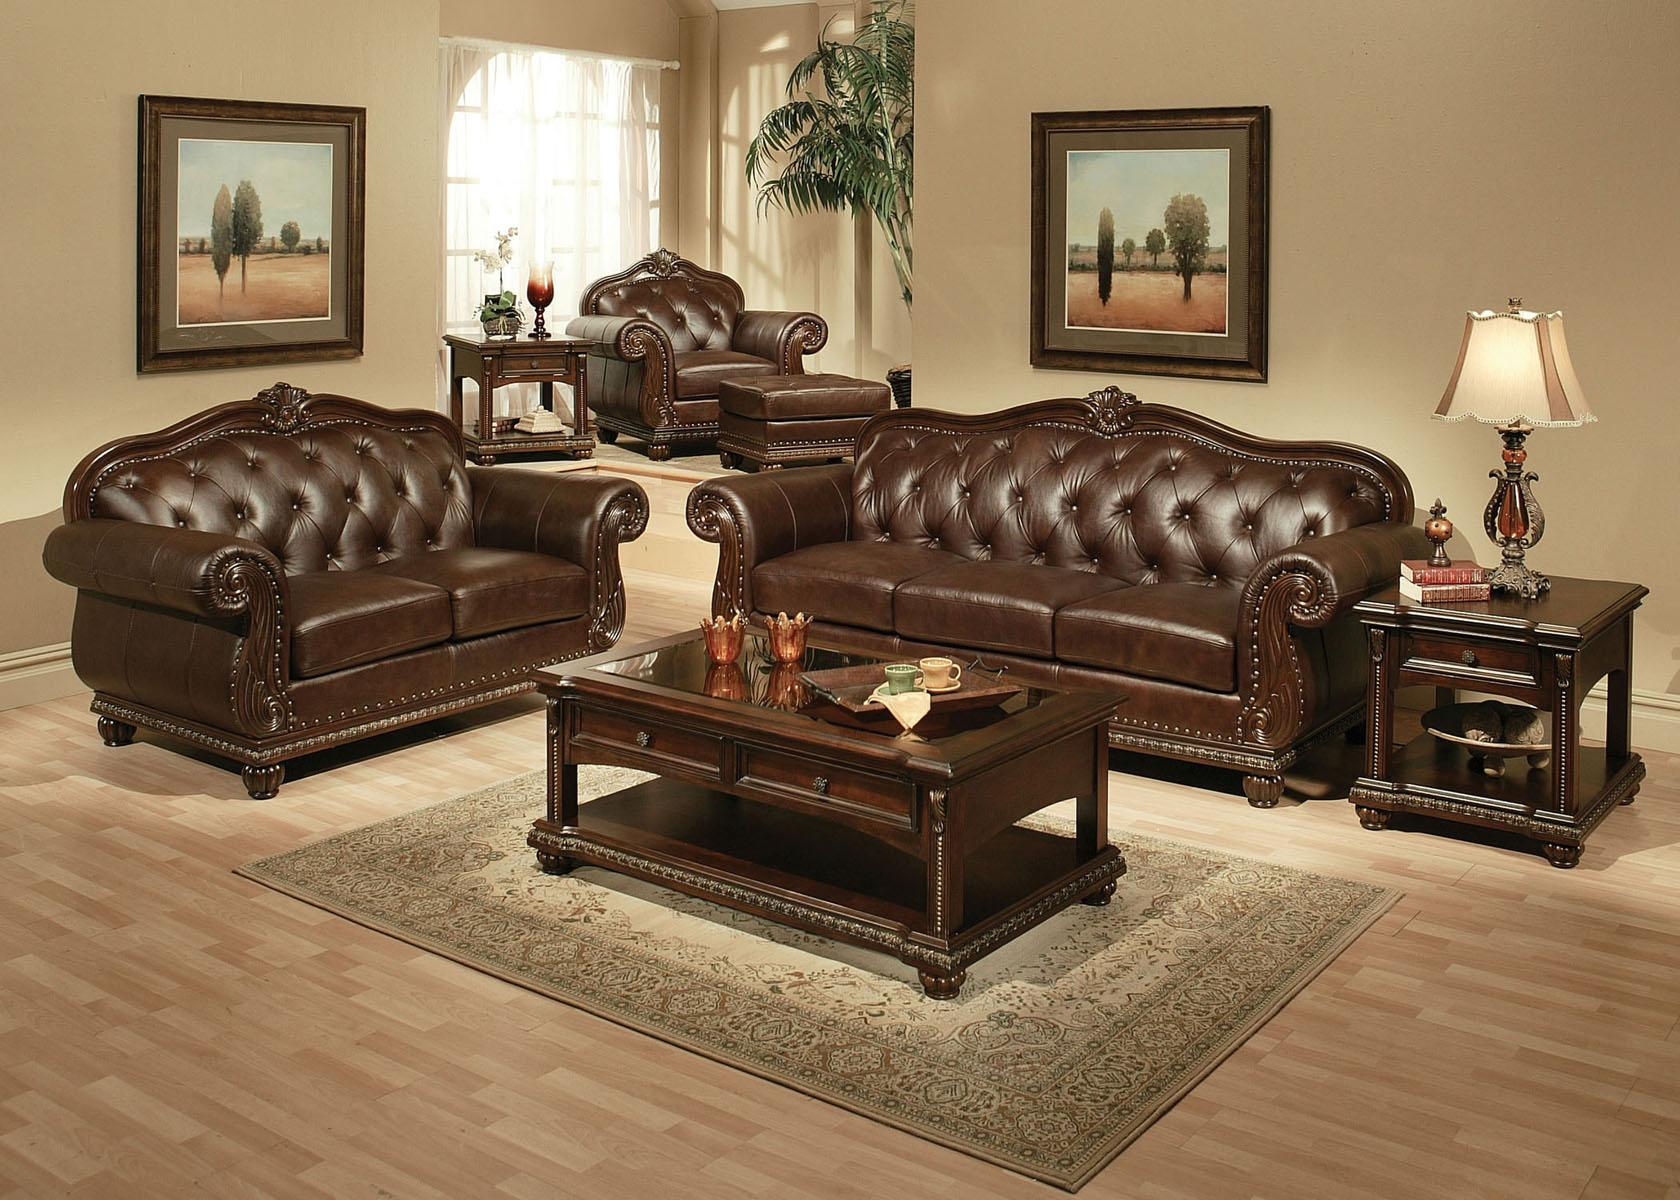 Acme Furniture Anondale Stationary Living Room Group - Item Number: 150 Stationary Living Room Group